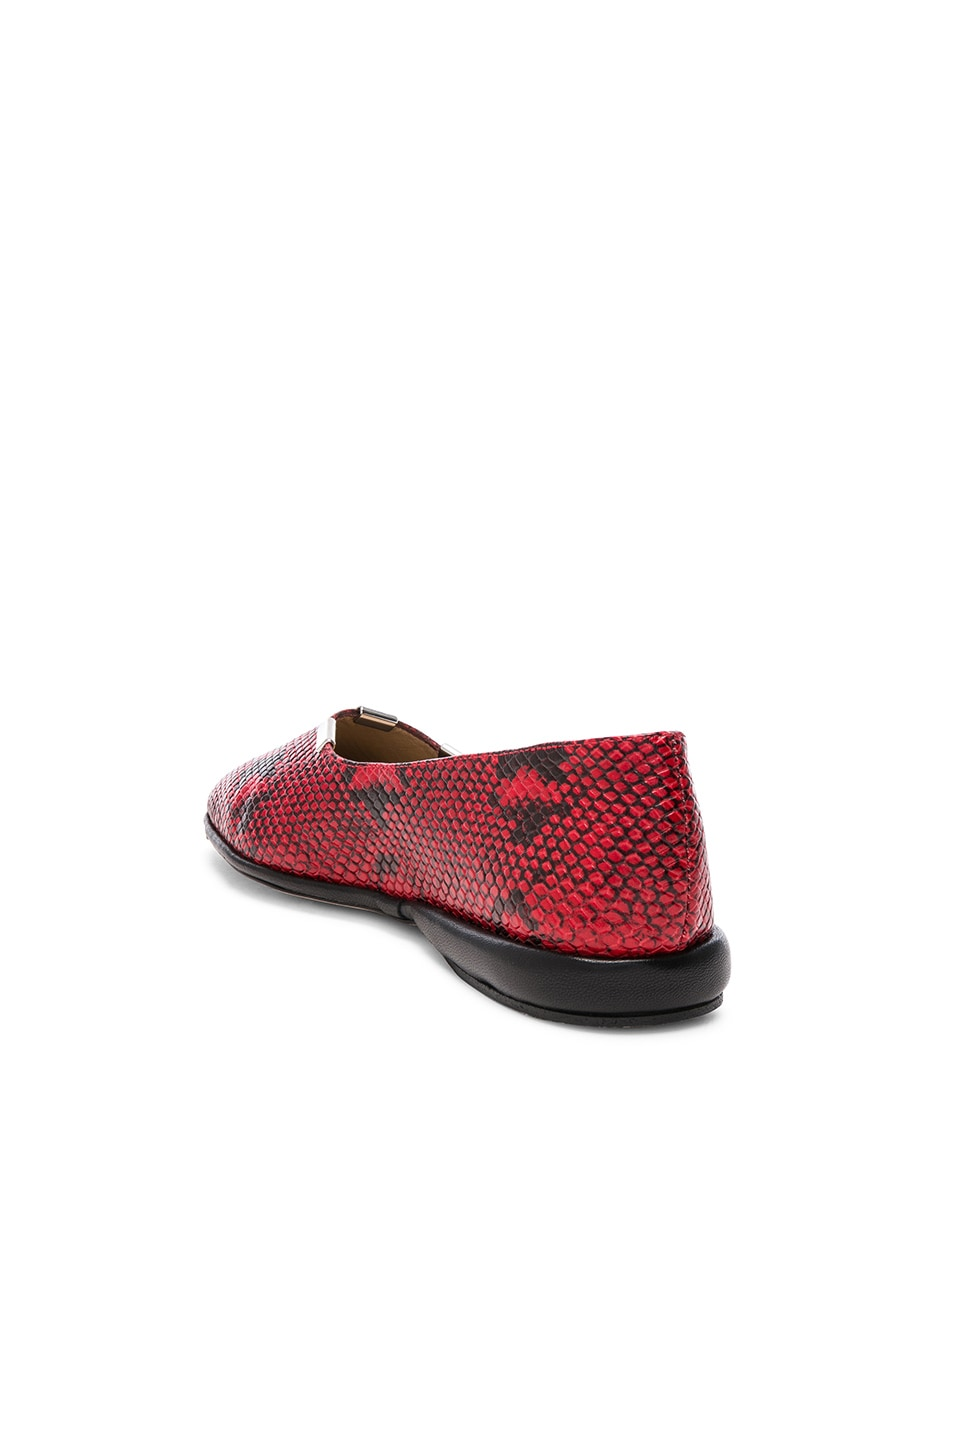 Image 3 of Chloe Skye Python Print Leather Flats in Gypsy Red